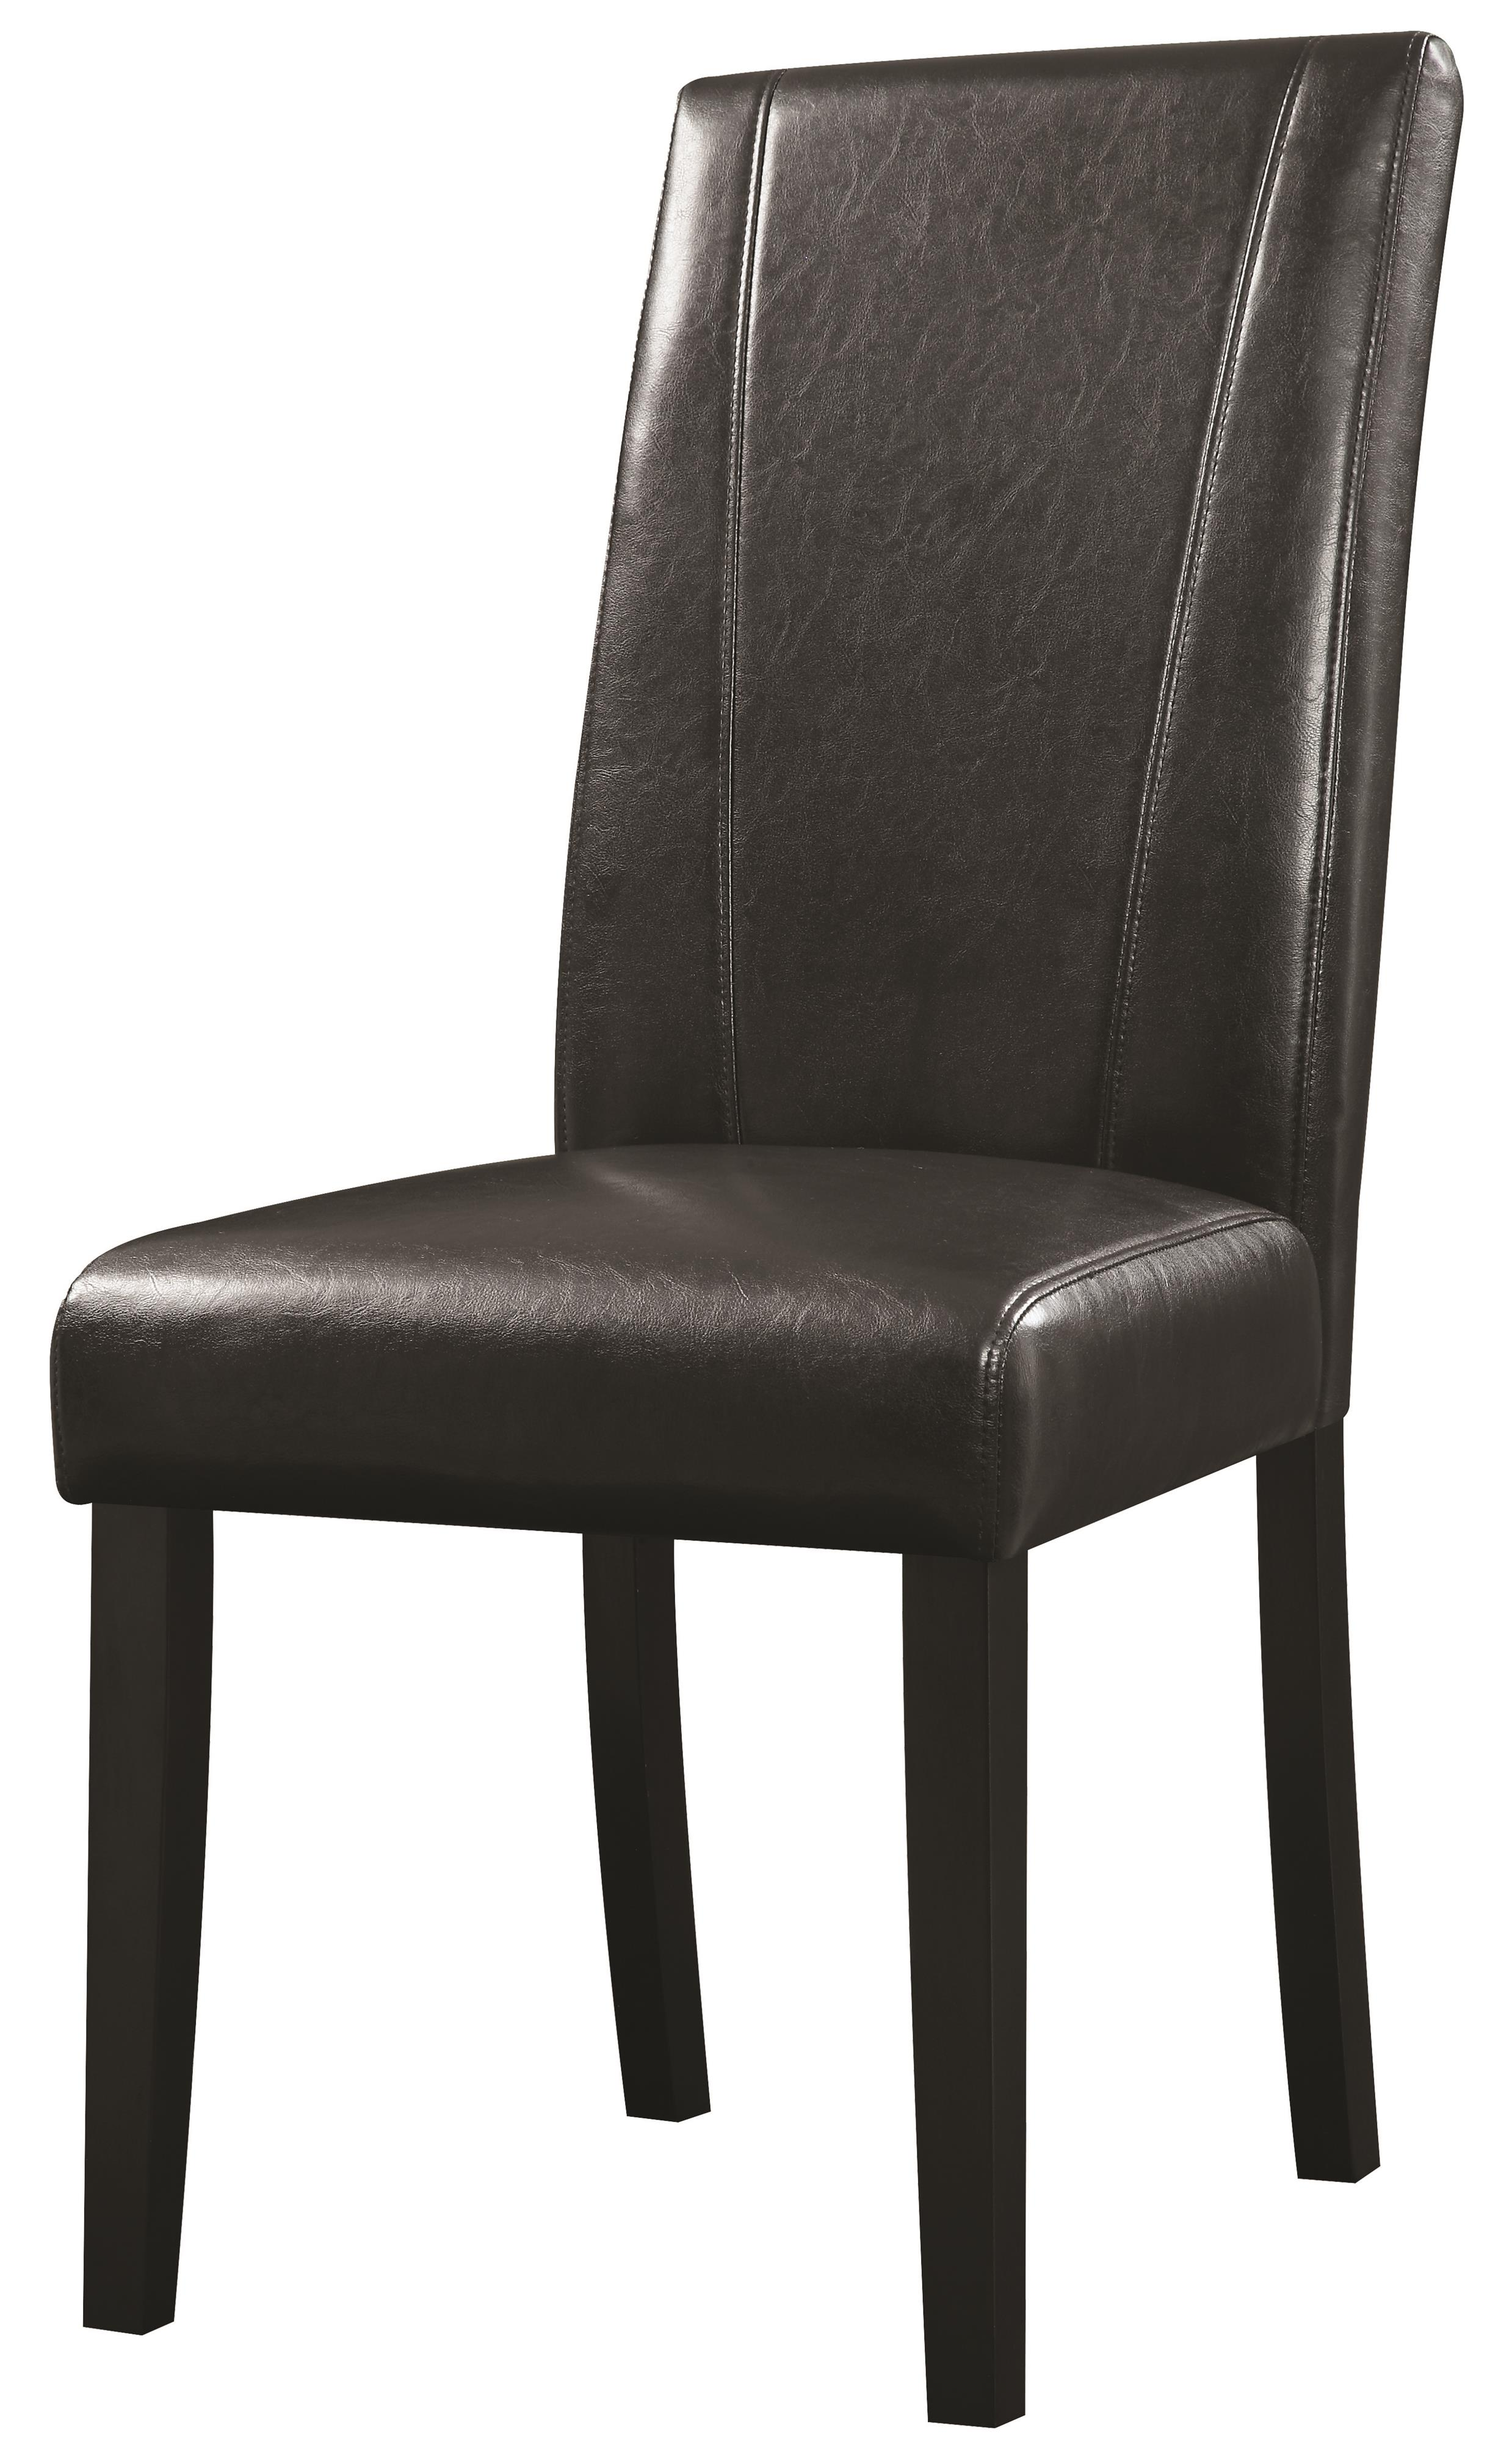 Coaster Nagel Parsons Chairs - Item Number: 130062